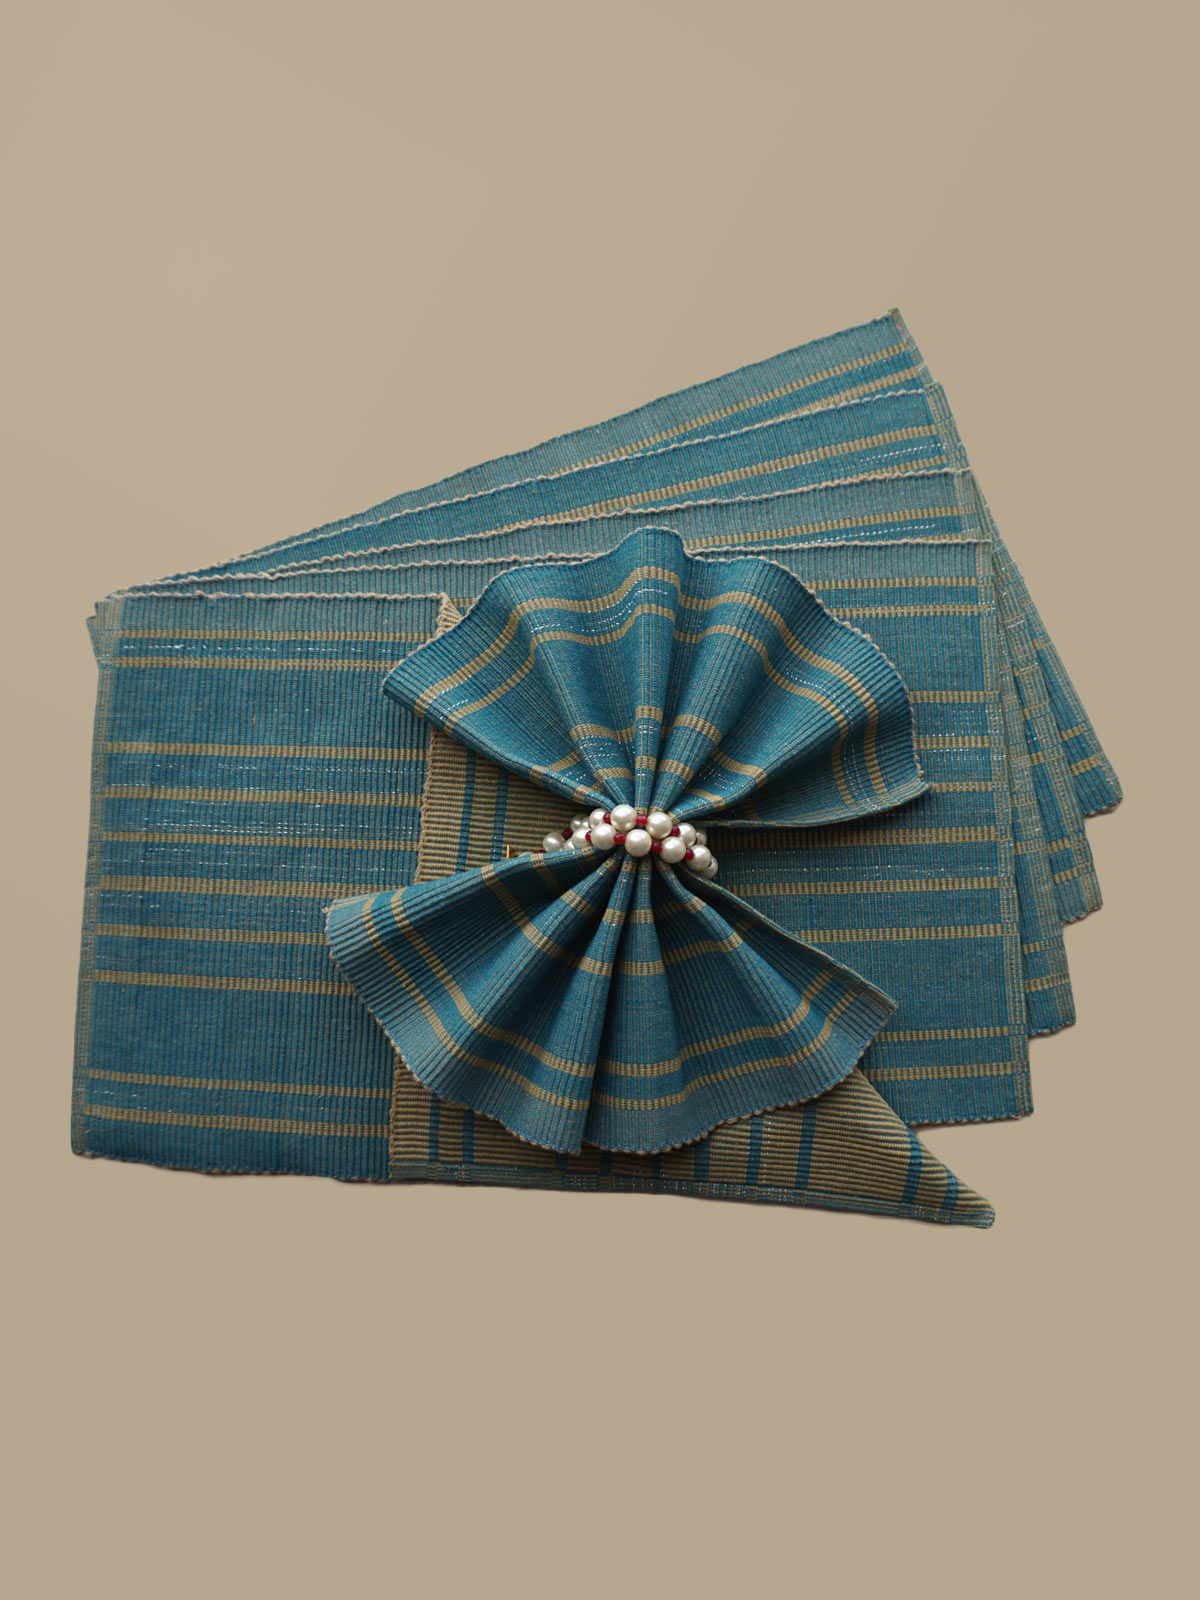 Indian August blue beige ribbed cotton table mats set of 6